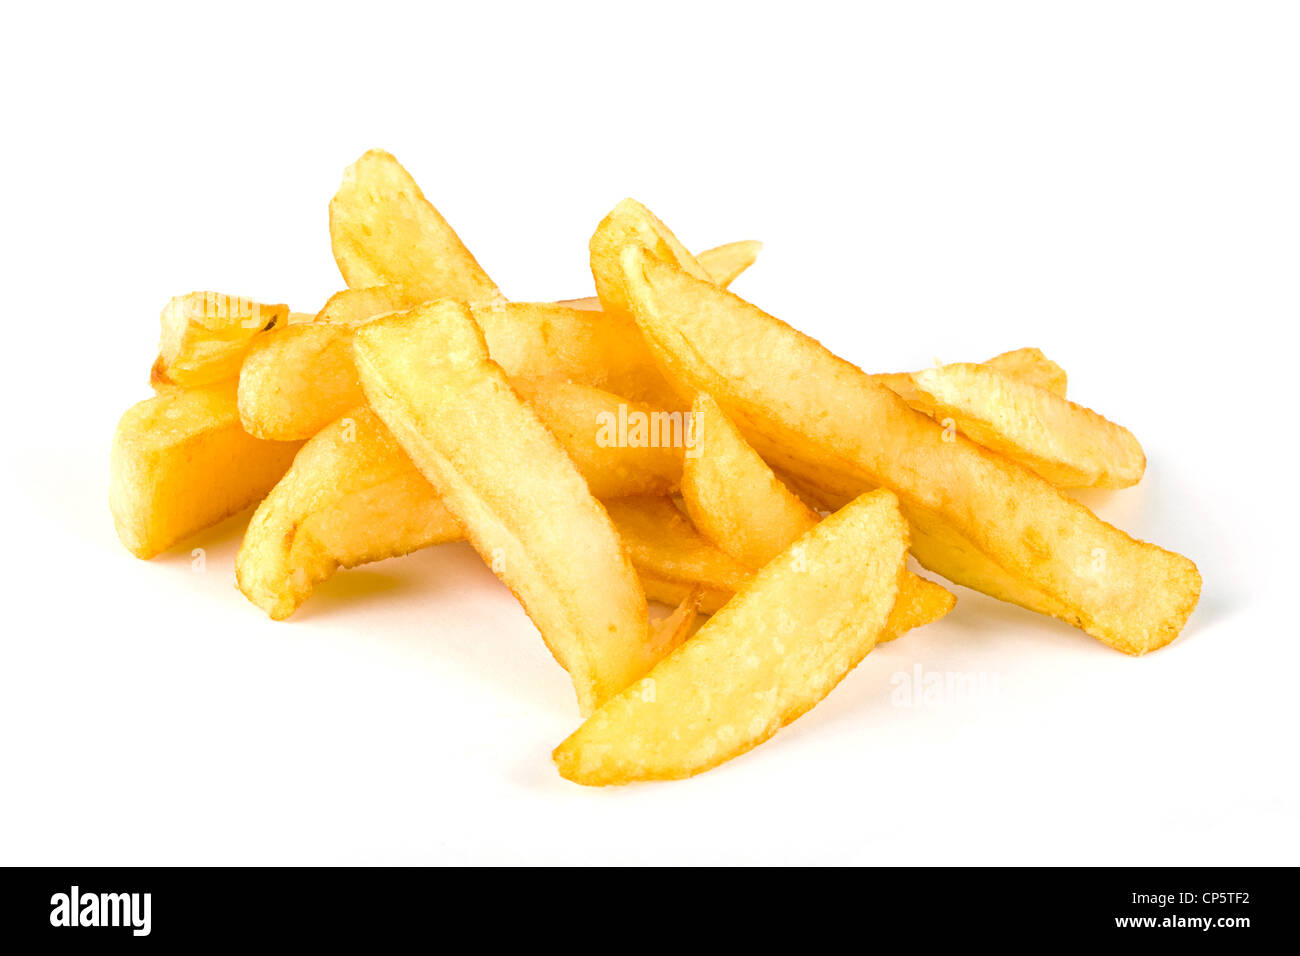 Pile of french fries over hwite - Stock Image